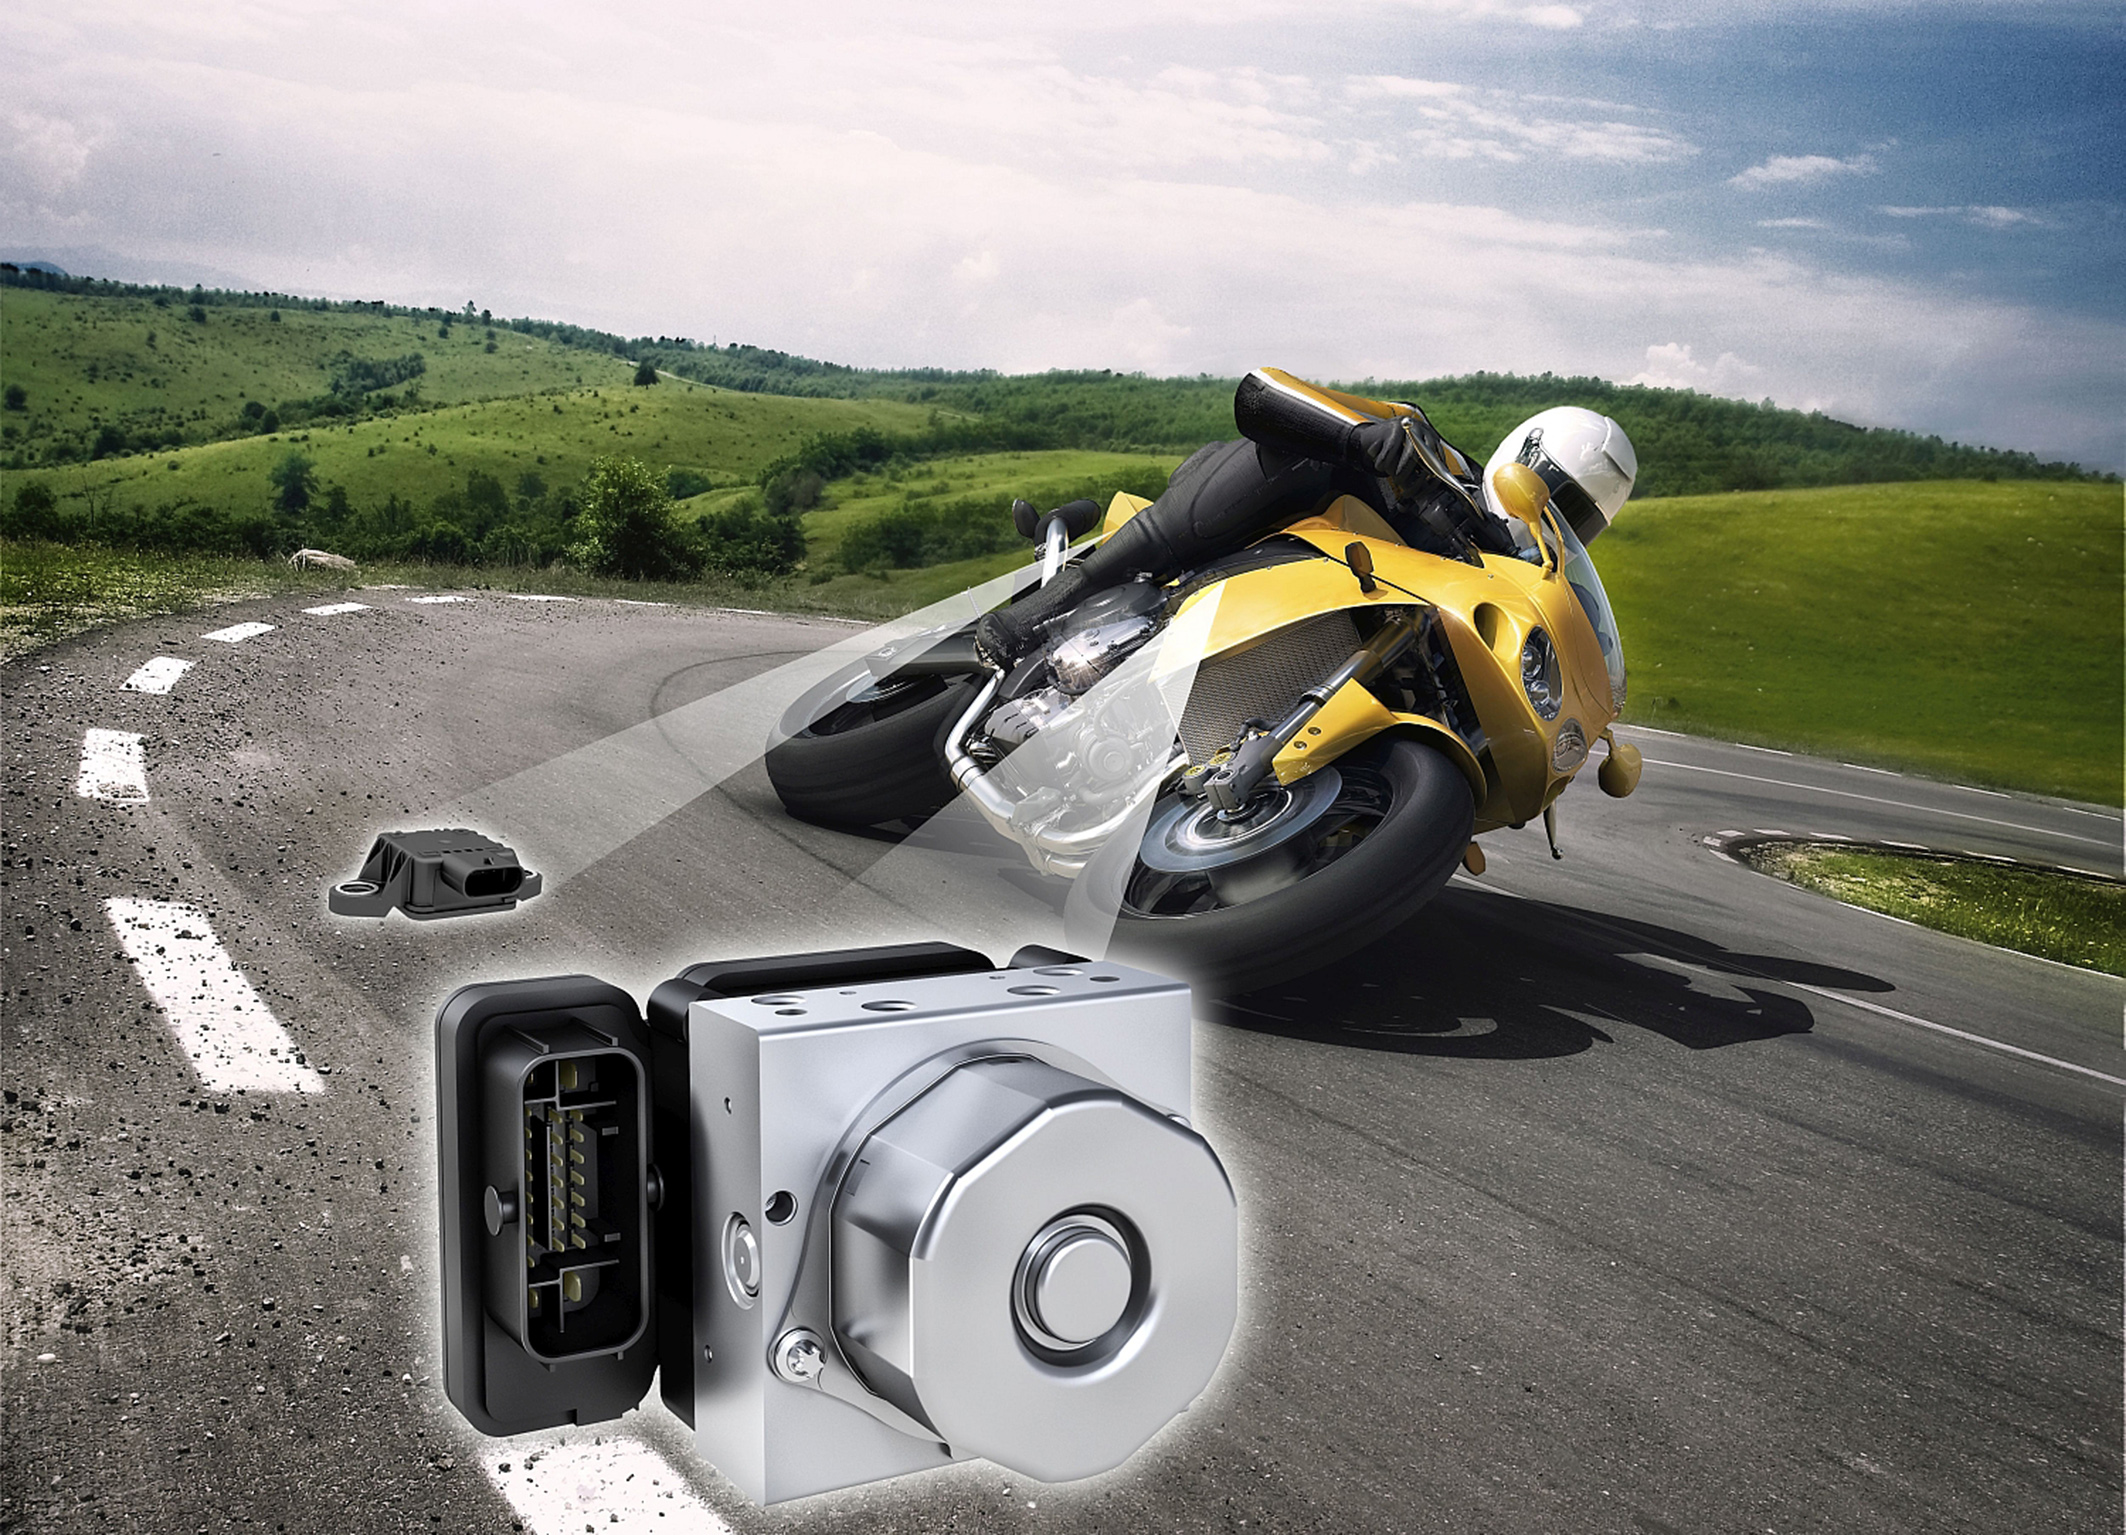 Bosch innovations for powered two-wheelers